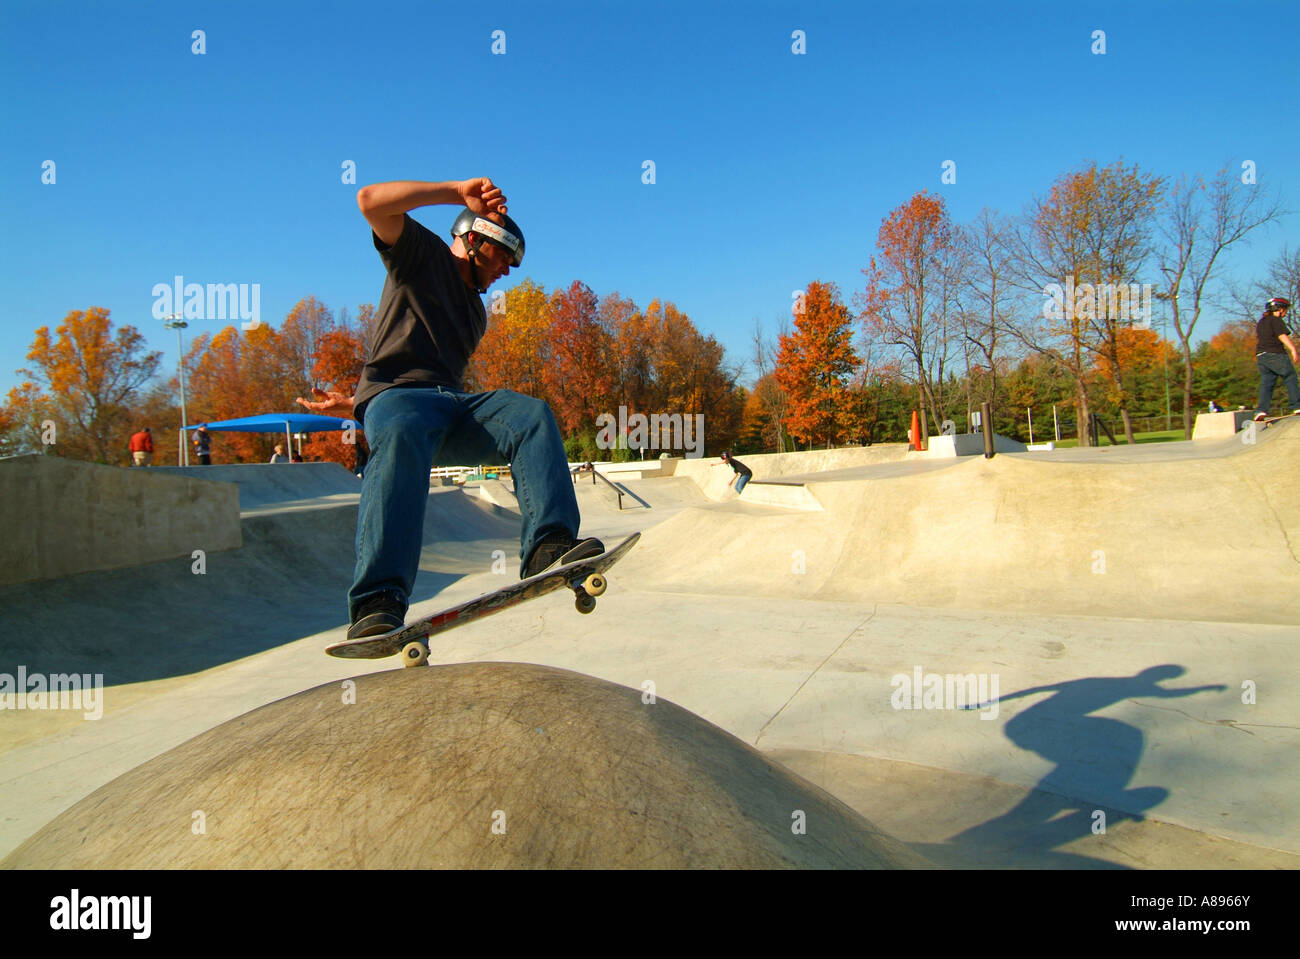 USA Maryland skate park in Bowie MD Prince Georges County Stock Photo